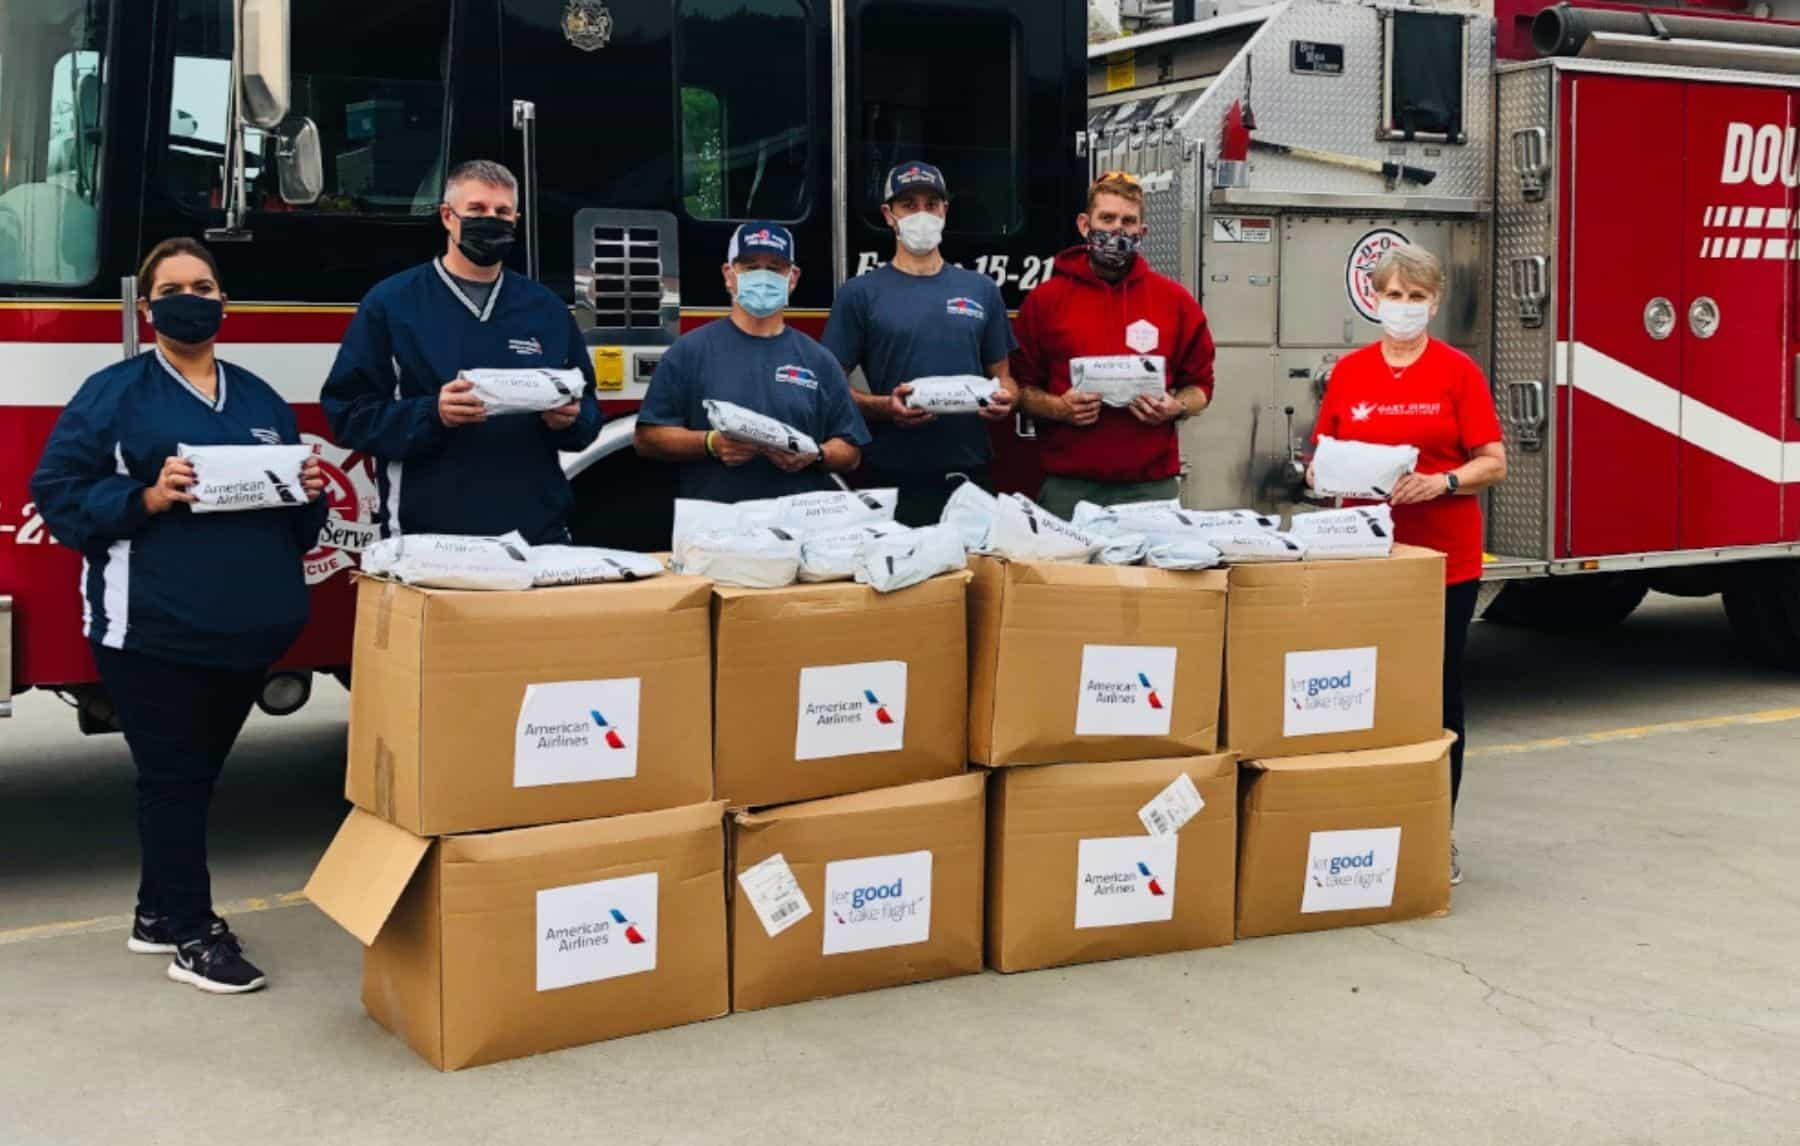 American Airlines and the Gary Sinise Foundation deliver snack care packages to firefighters in Brewster, Washington, during a three-state West Coast tour.